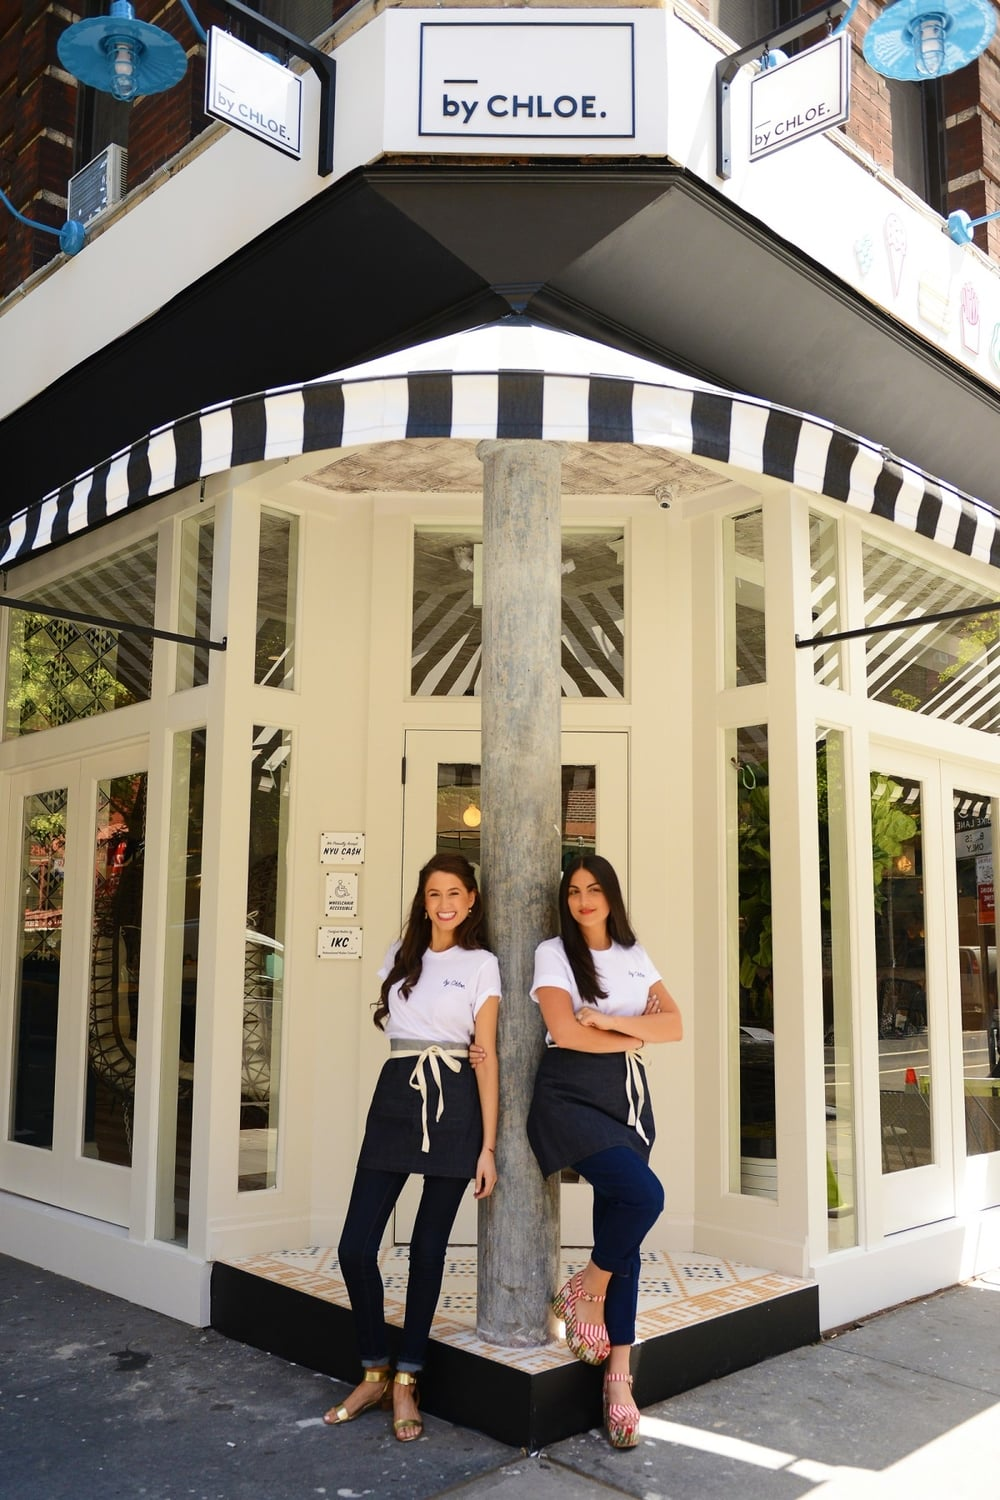 by CHLOE.,  a vegan-chic casual dining spot in the West Village, is the collaborative result of two young female entrepreneurs, vegan chef and best-selling cookbook author  Chloe Coscarelli  and Samantha Wasser of  ESquared Hospitality  .   Photo source: Forbes.com.*